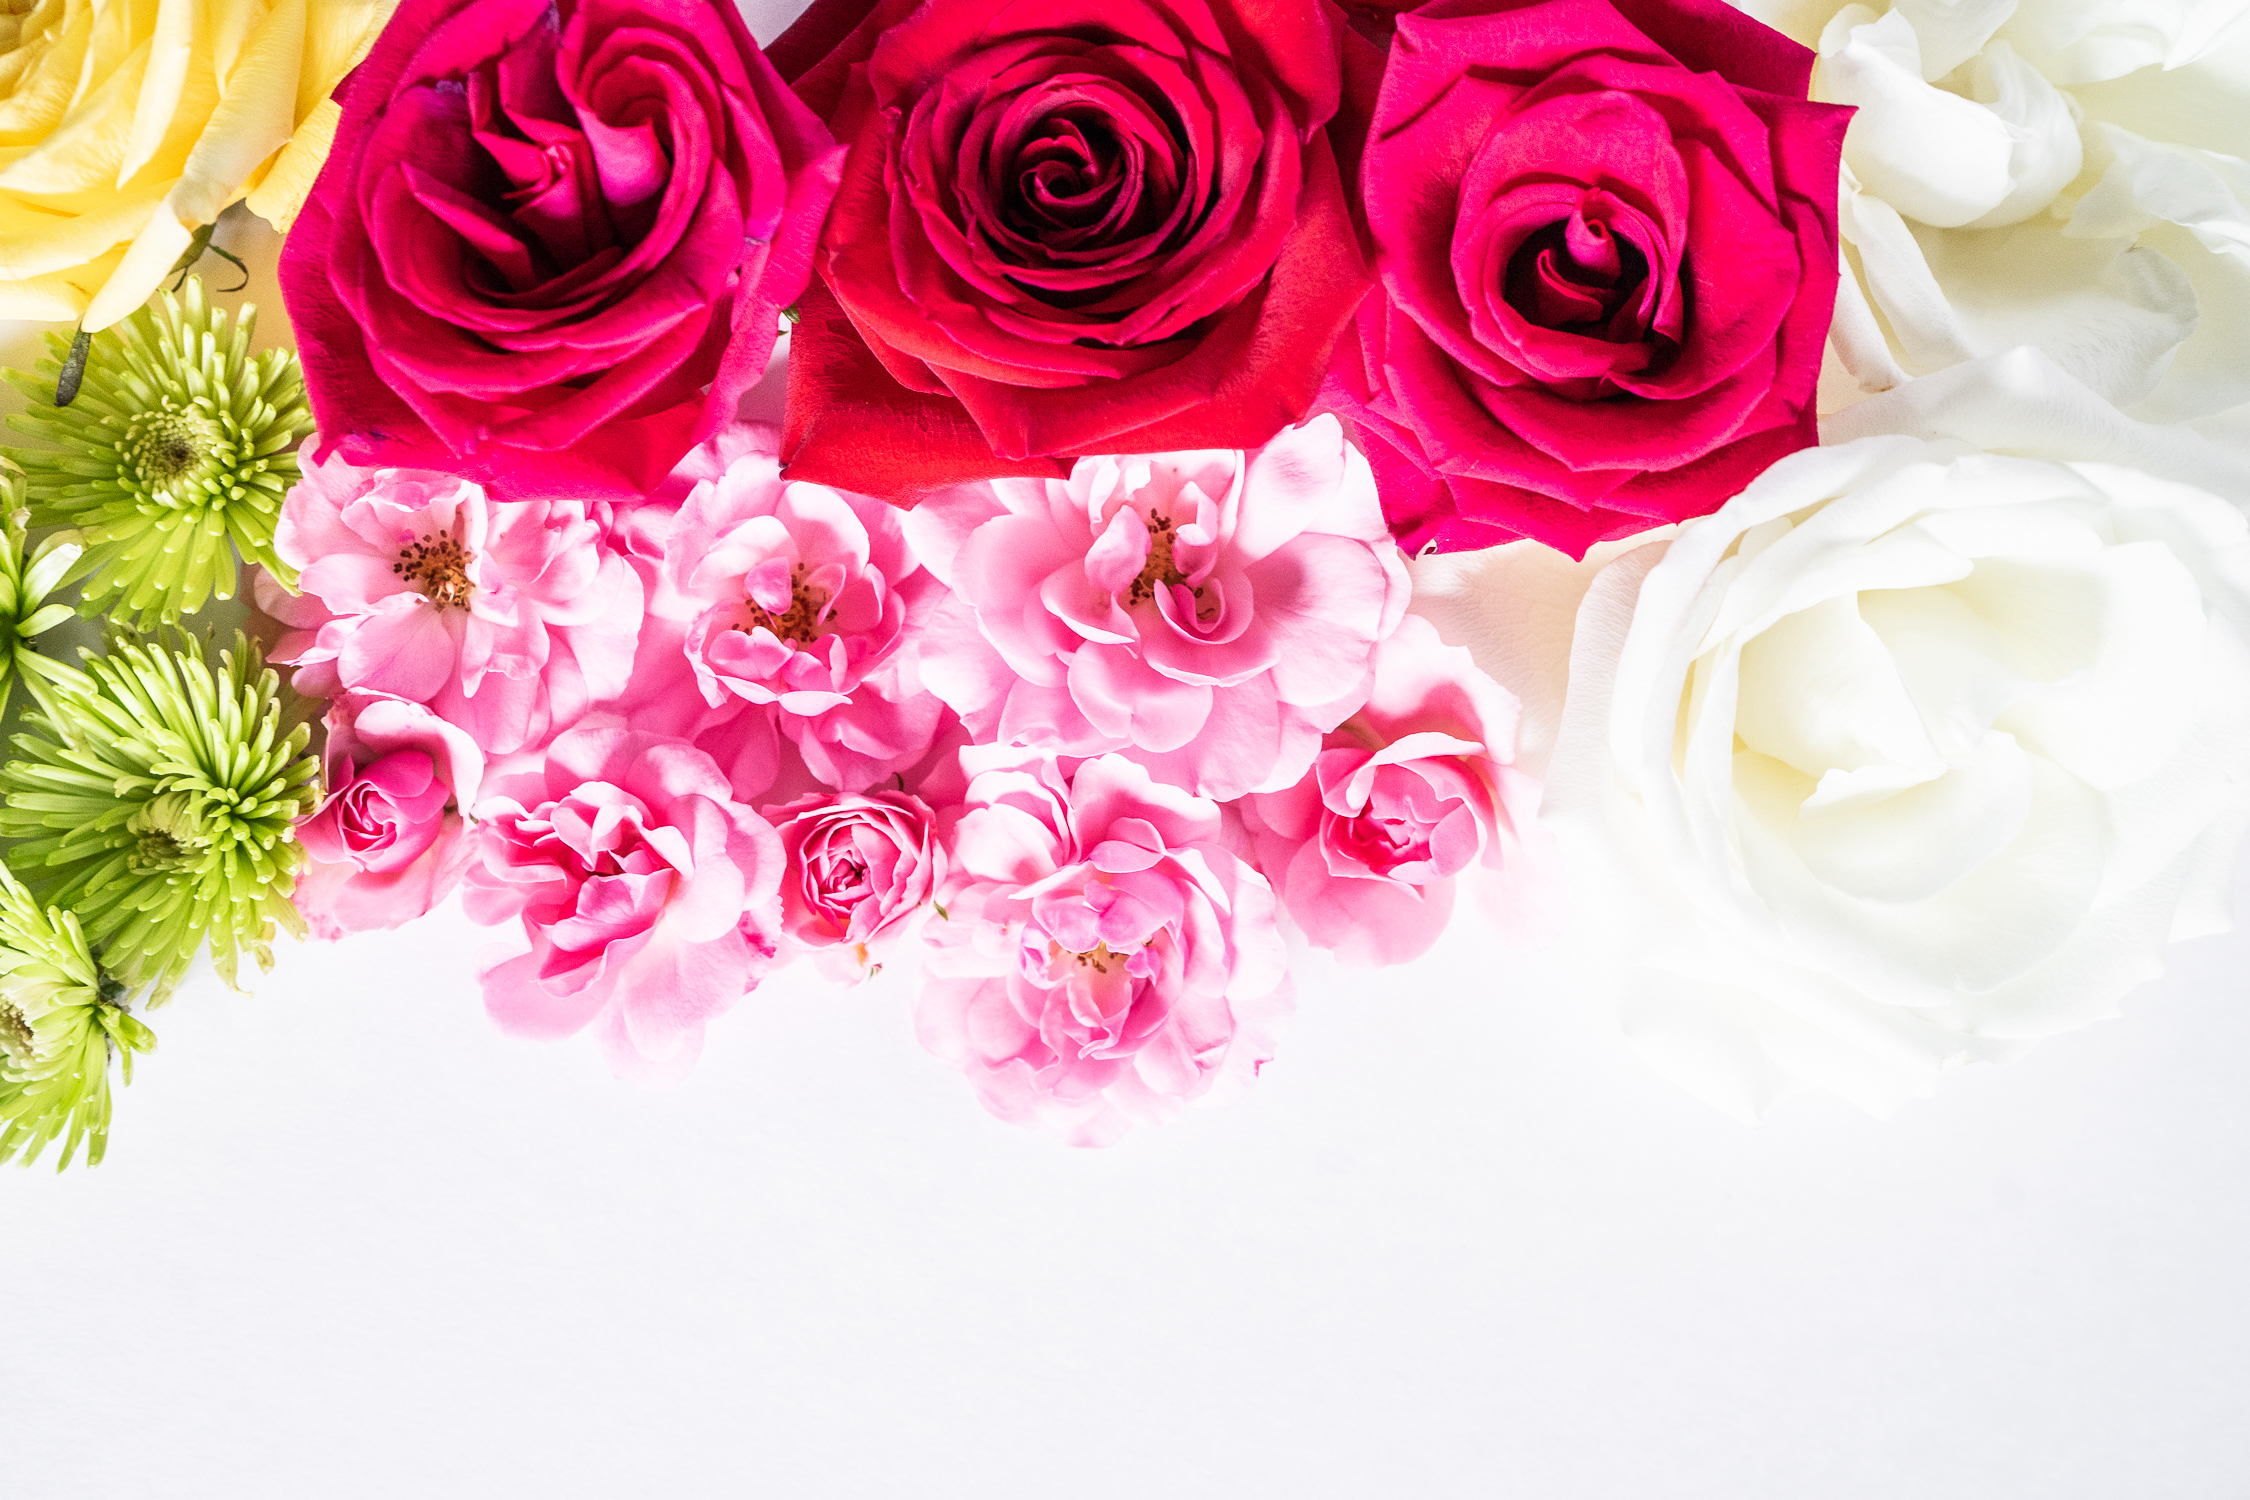 Which Flowers Symbolize Love?